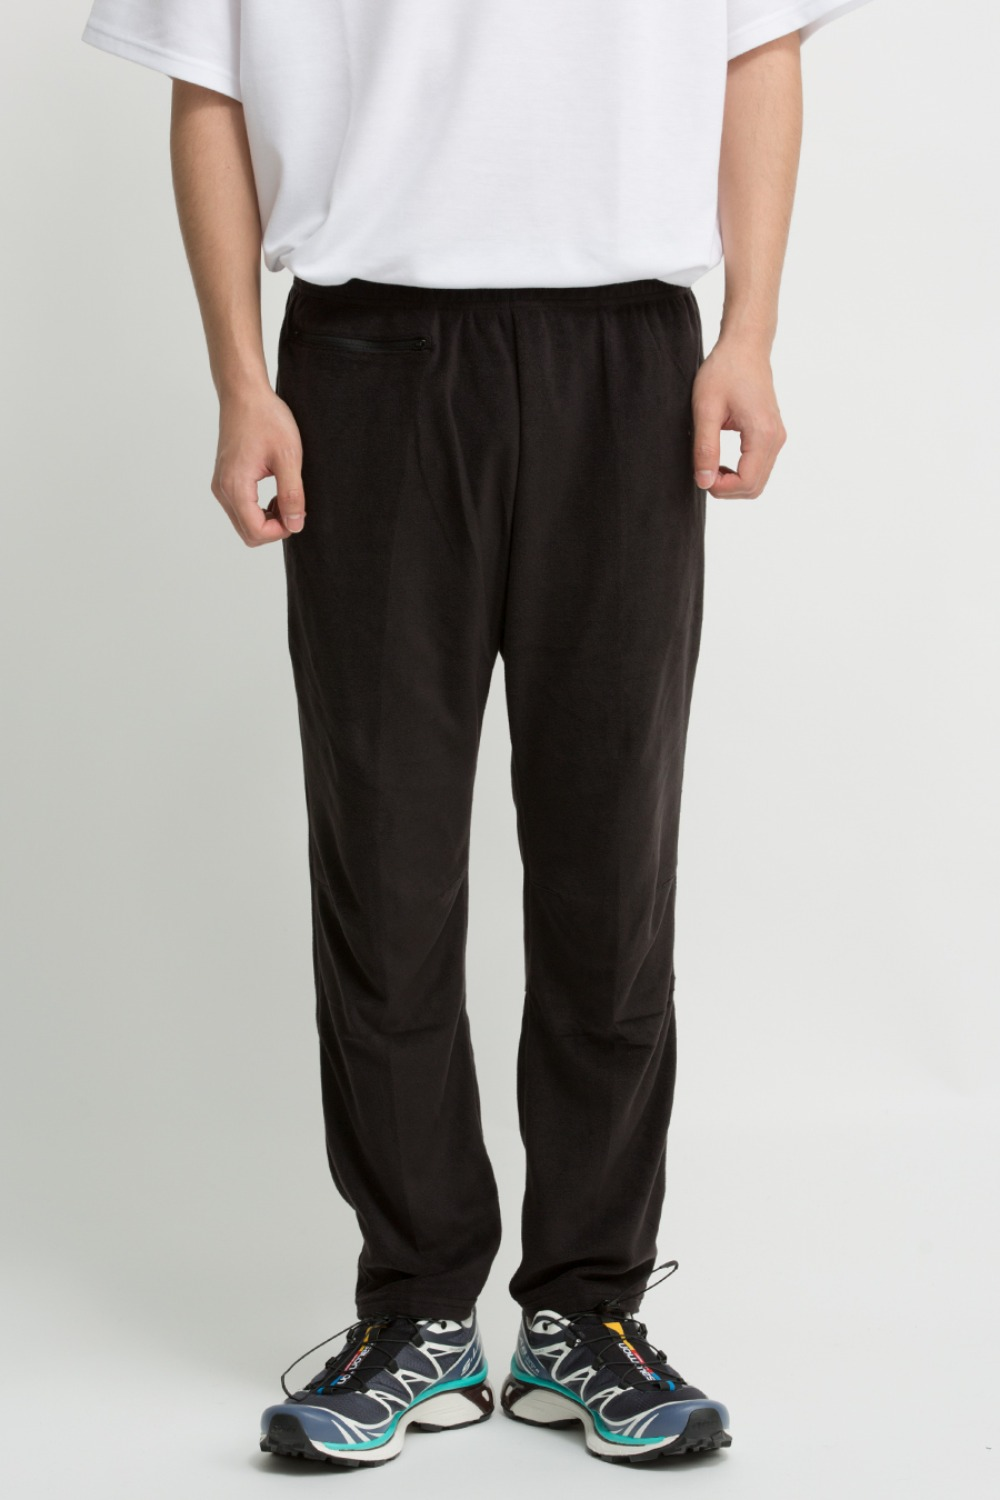 1P CYCLE PANT - POLY FLEECE BLACK